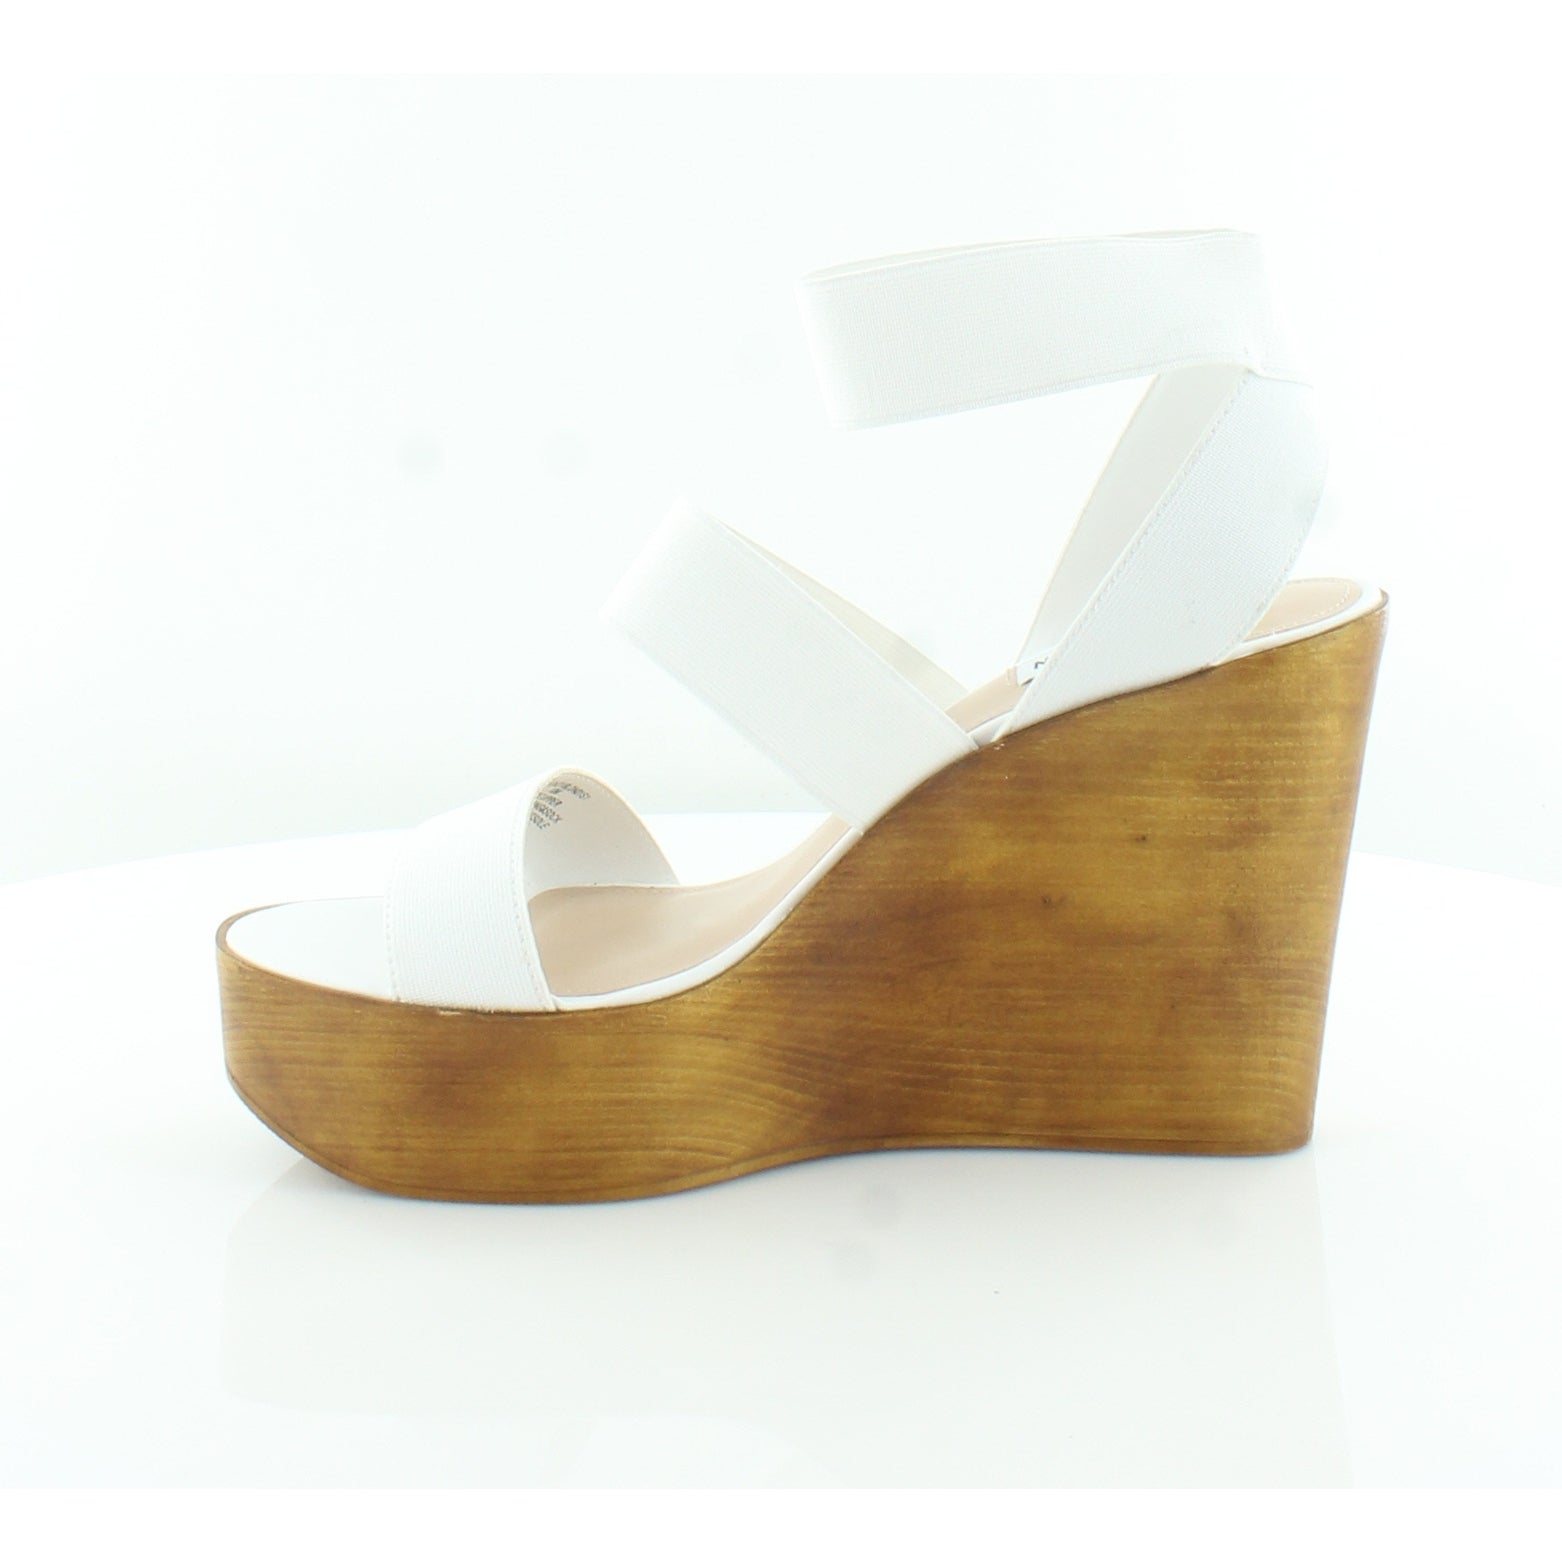 02c3a710d767 Shop Steve Madden Blondy Women s Heels White - 10 - Free Shipping Today -  Overstock - 27403811